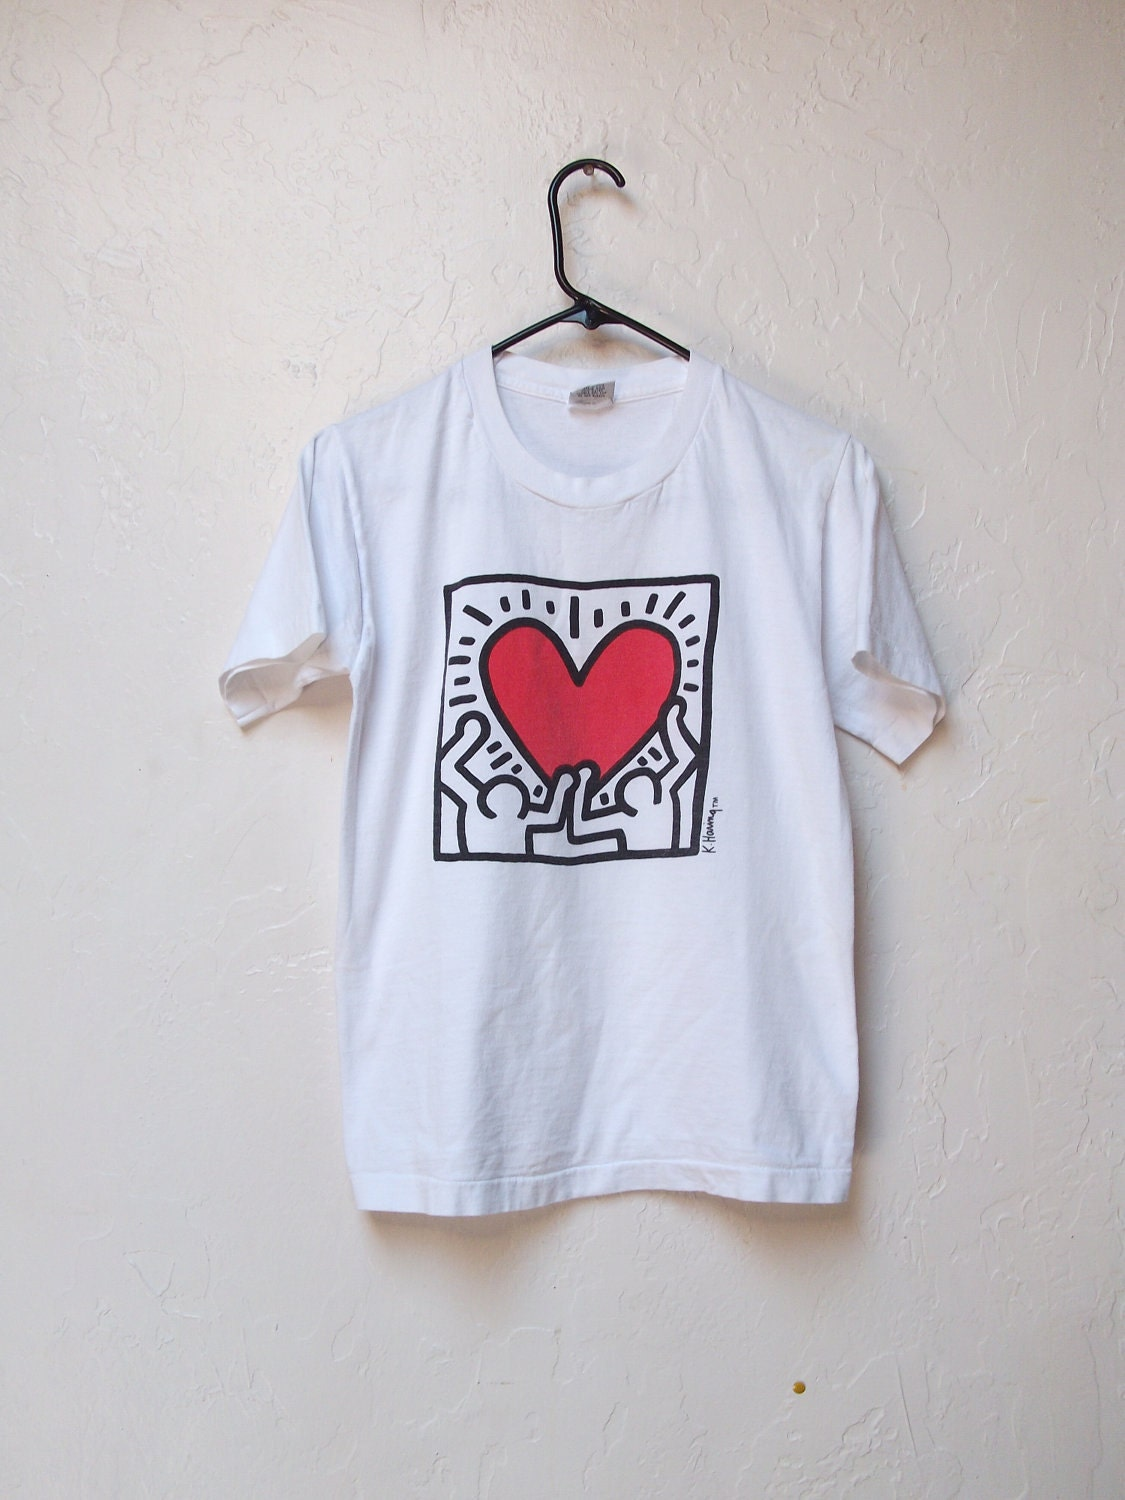 vintage official pop shop keith haring t shirt circa by. Black Bedroom Furniture Sets. Home Design Ideas